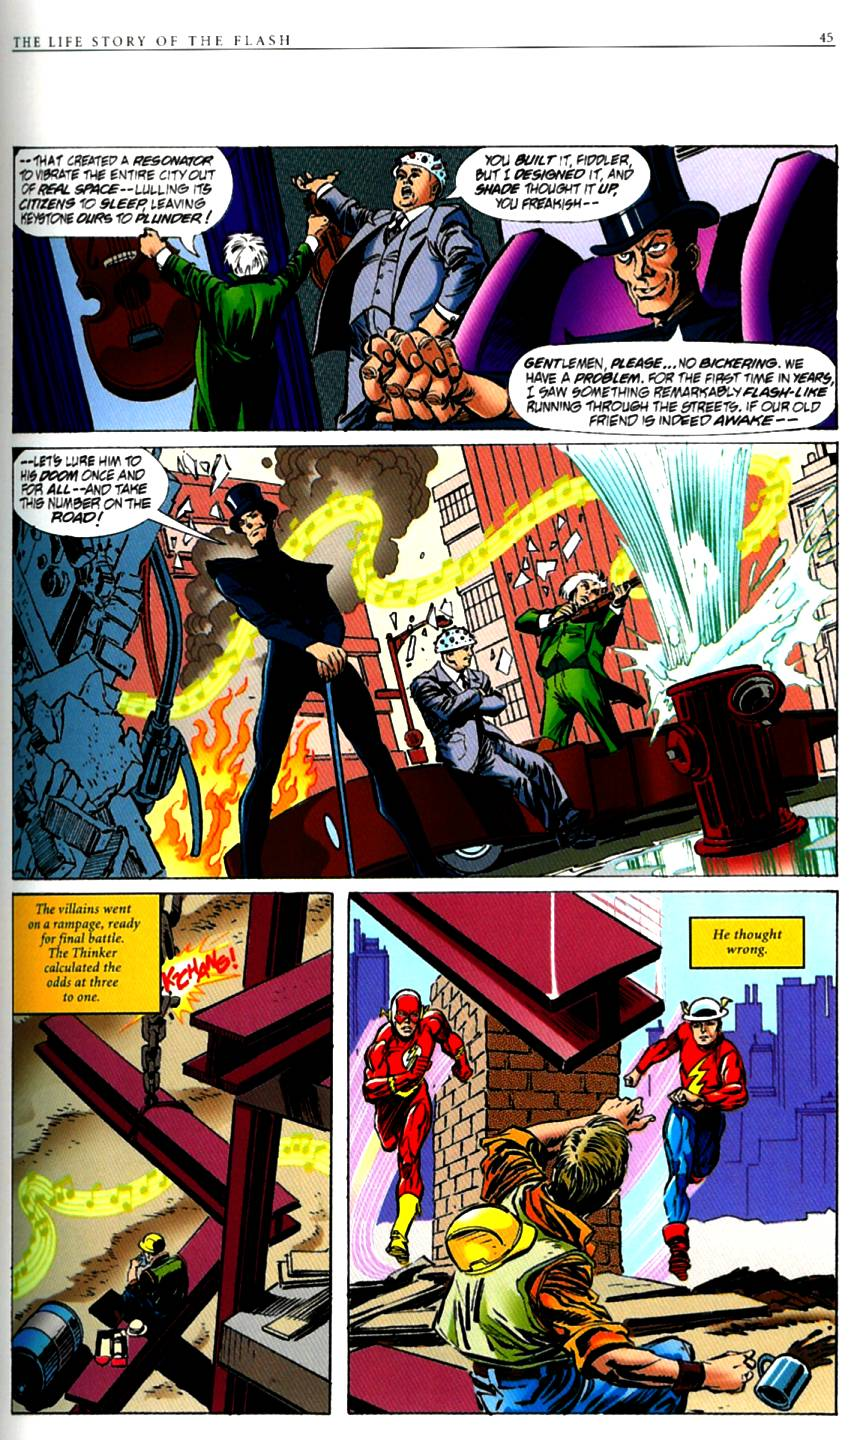 Read online The Life Story of the Flash comic -  Issue # Full - 47